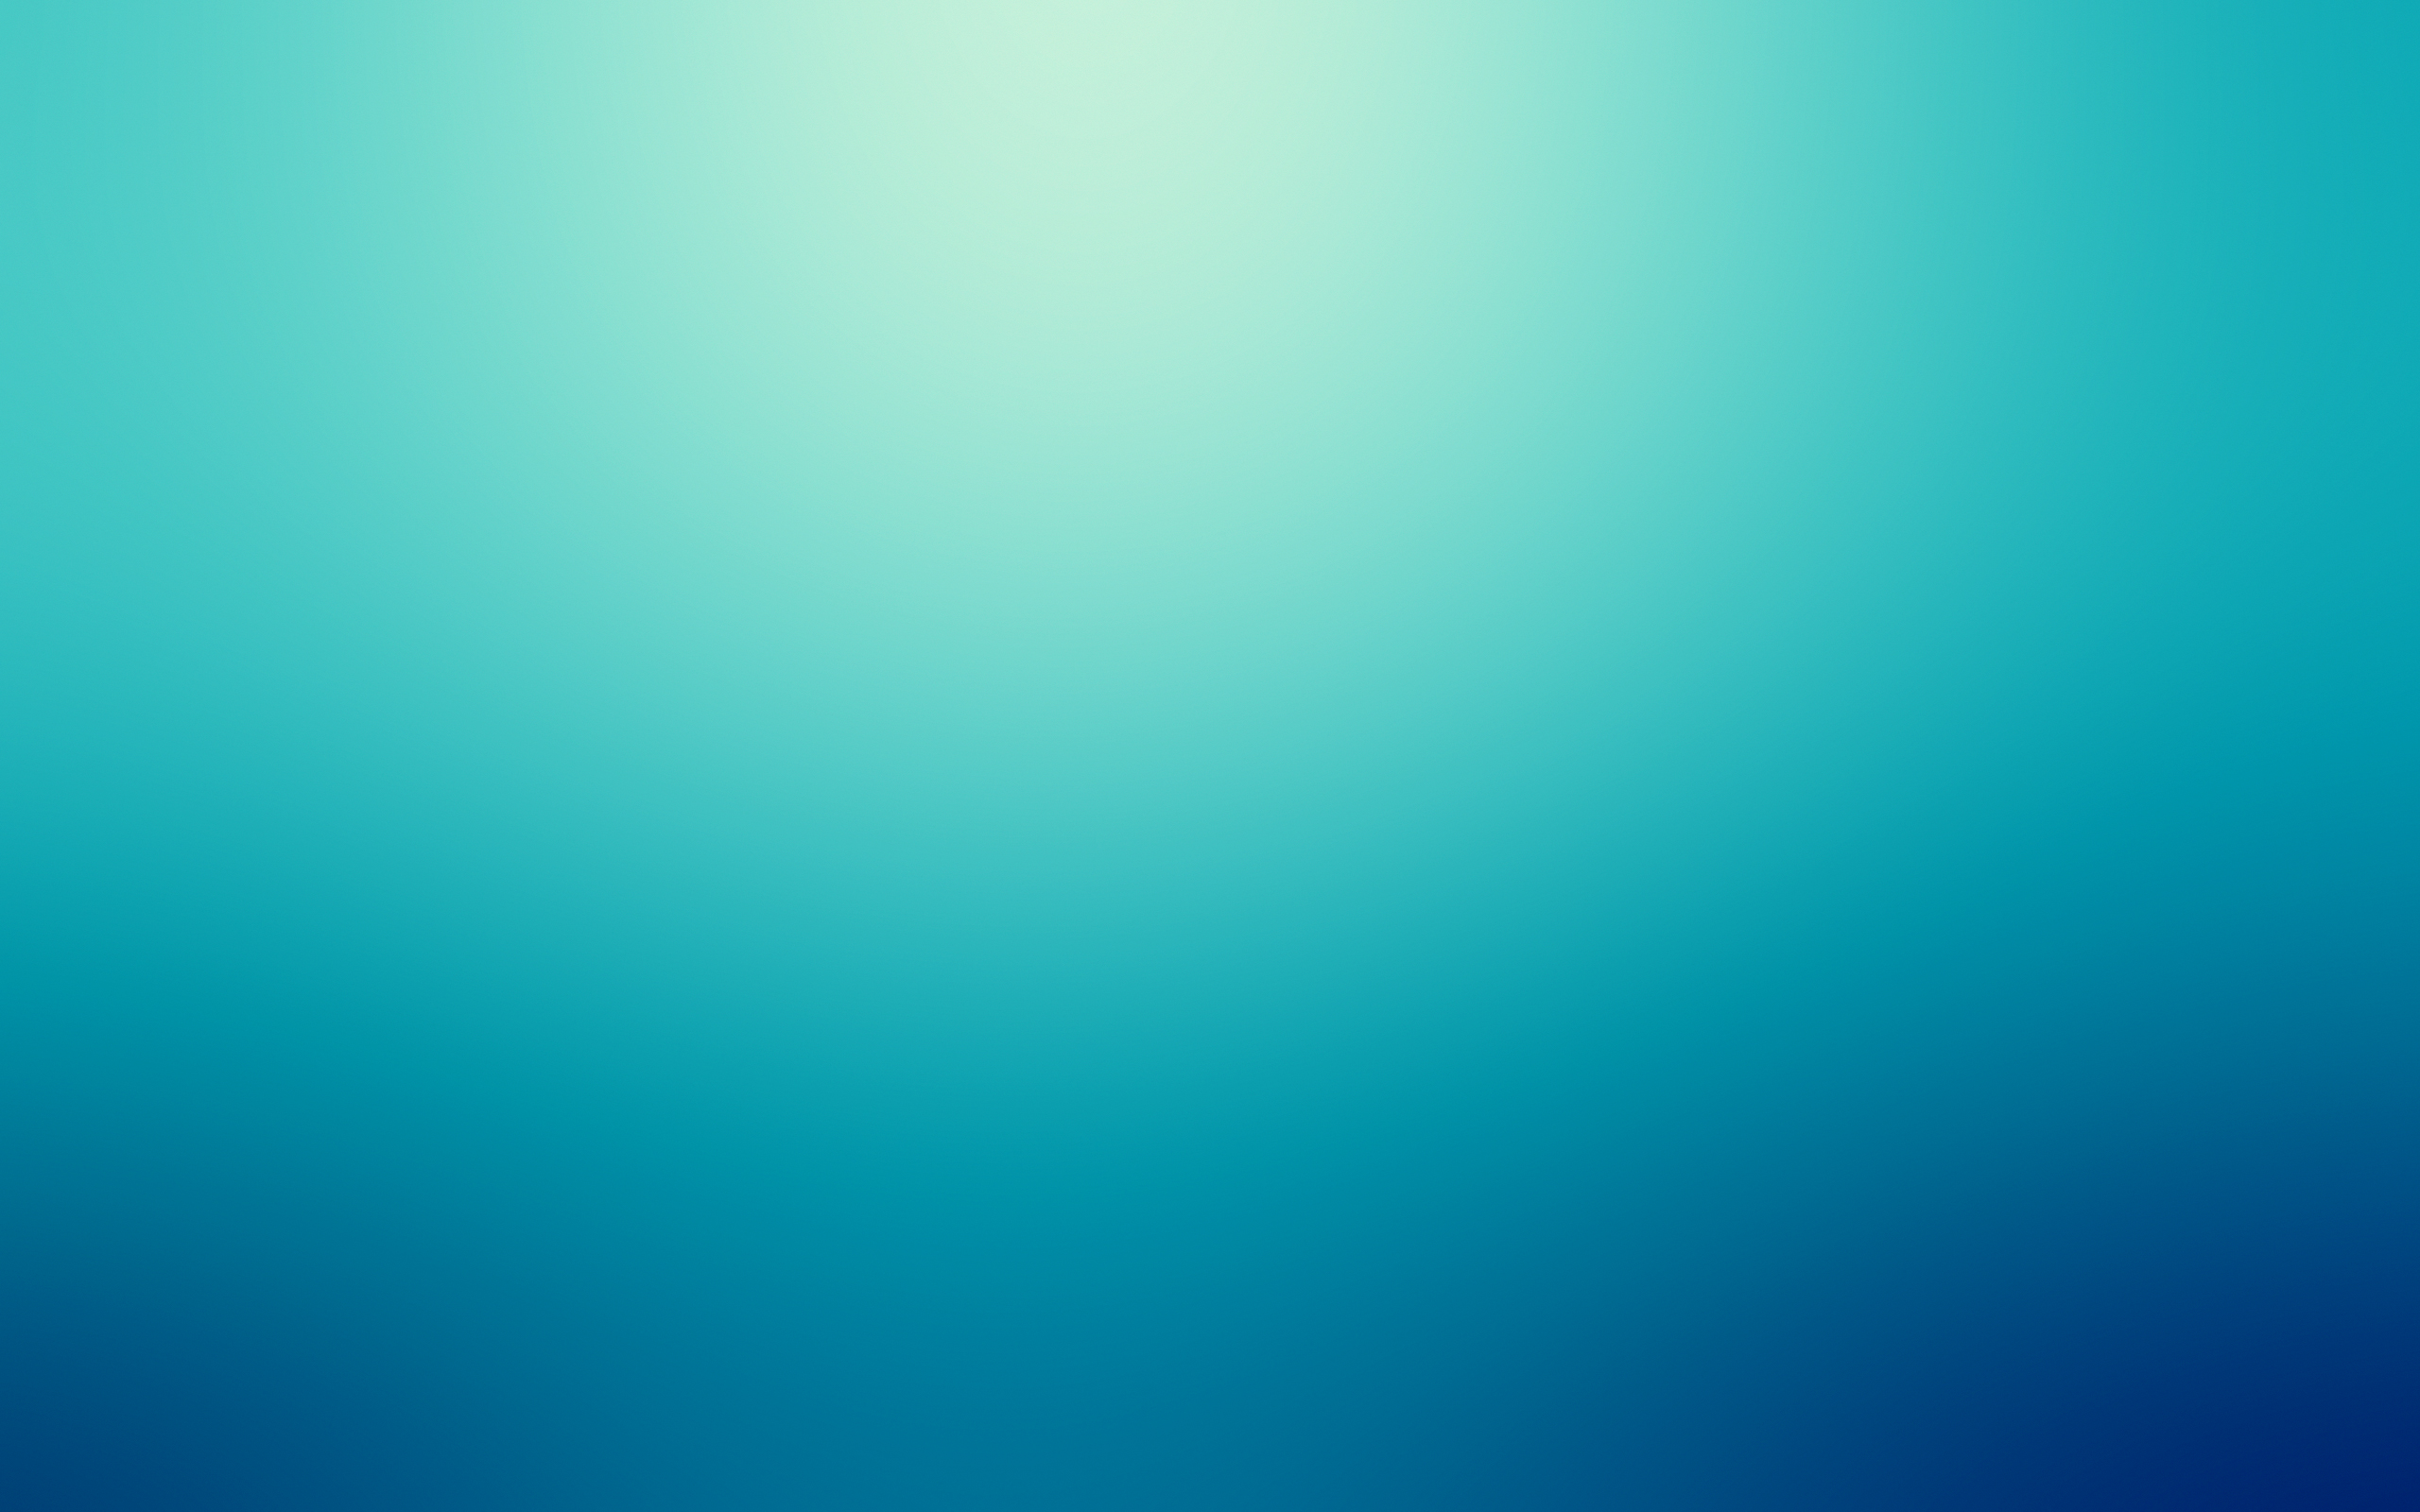 Wallpaper Blue Turquoise